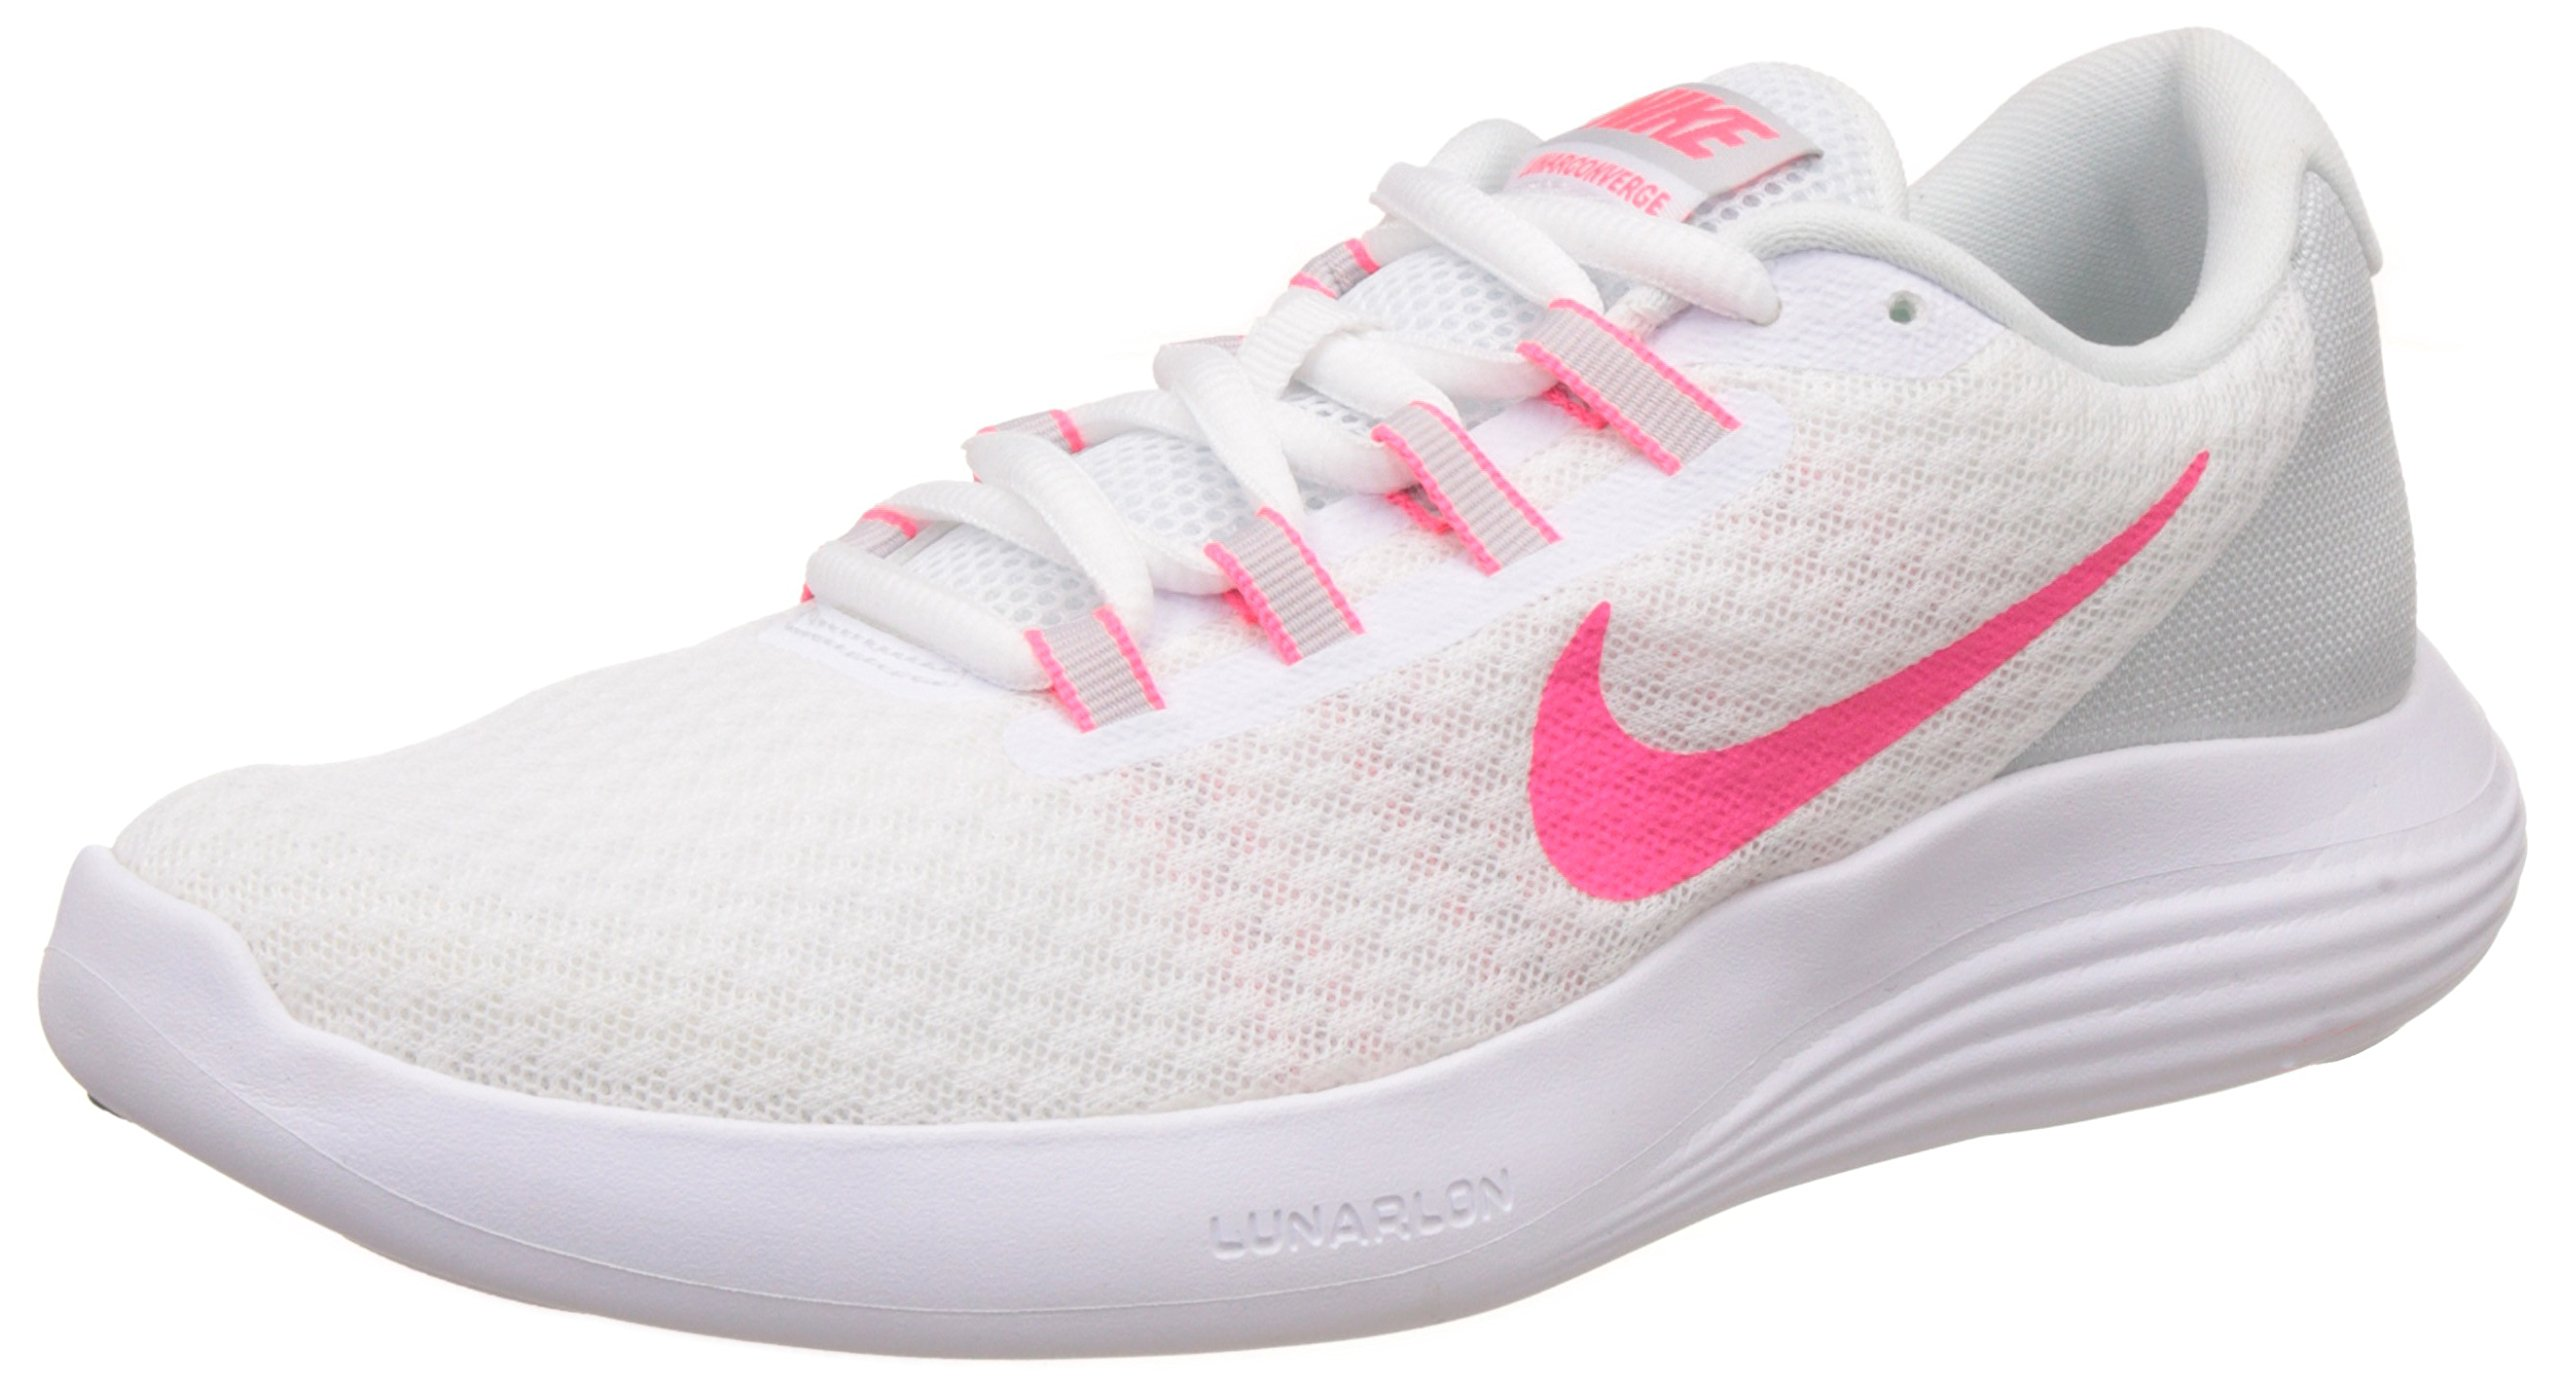 be0b02a9622 Galleon - NIKE Women s Lunarconverge White Racer Pink - Pure Platinum  Ankle-High Running Shoe 6.5M